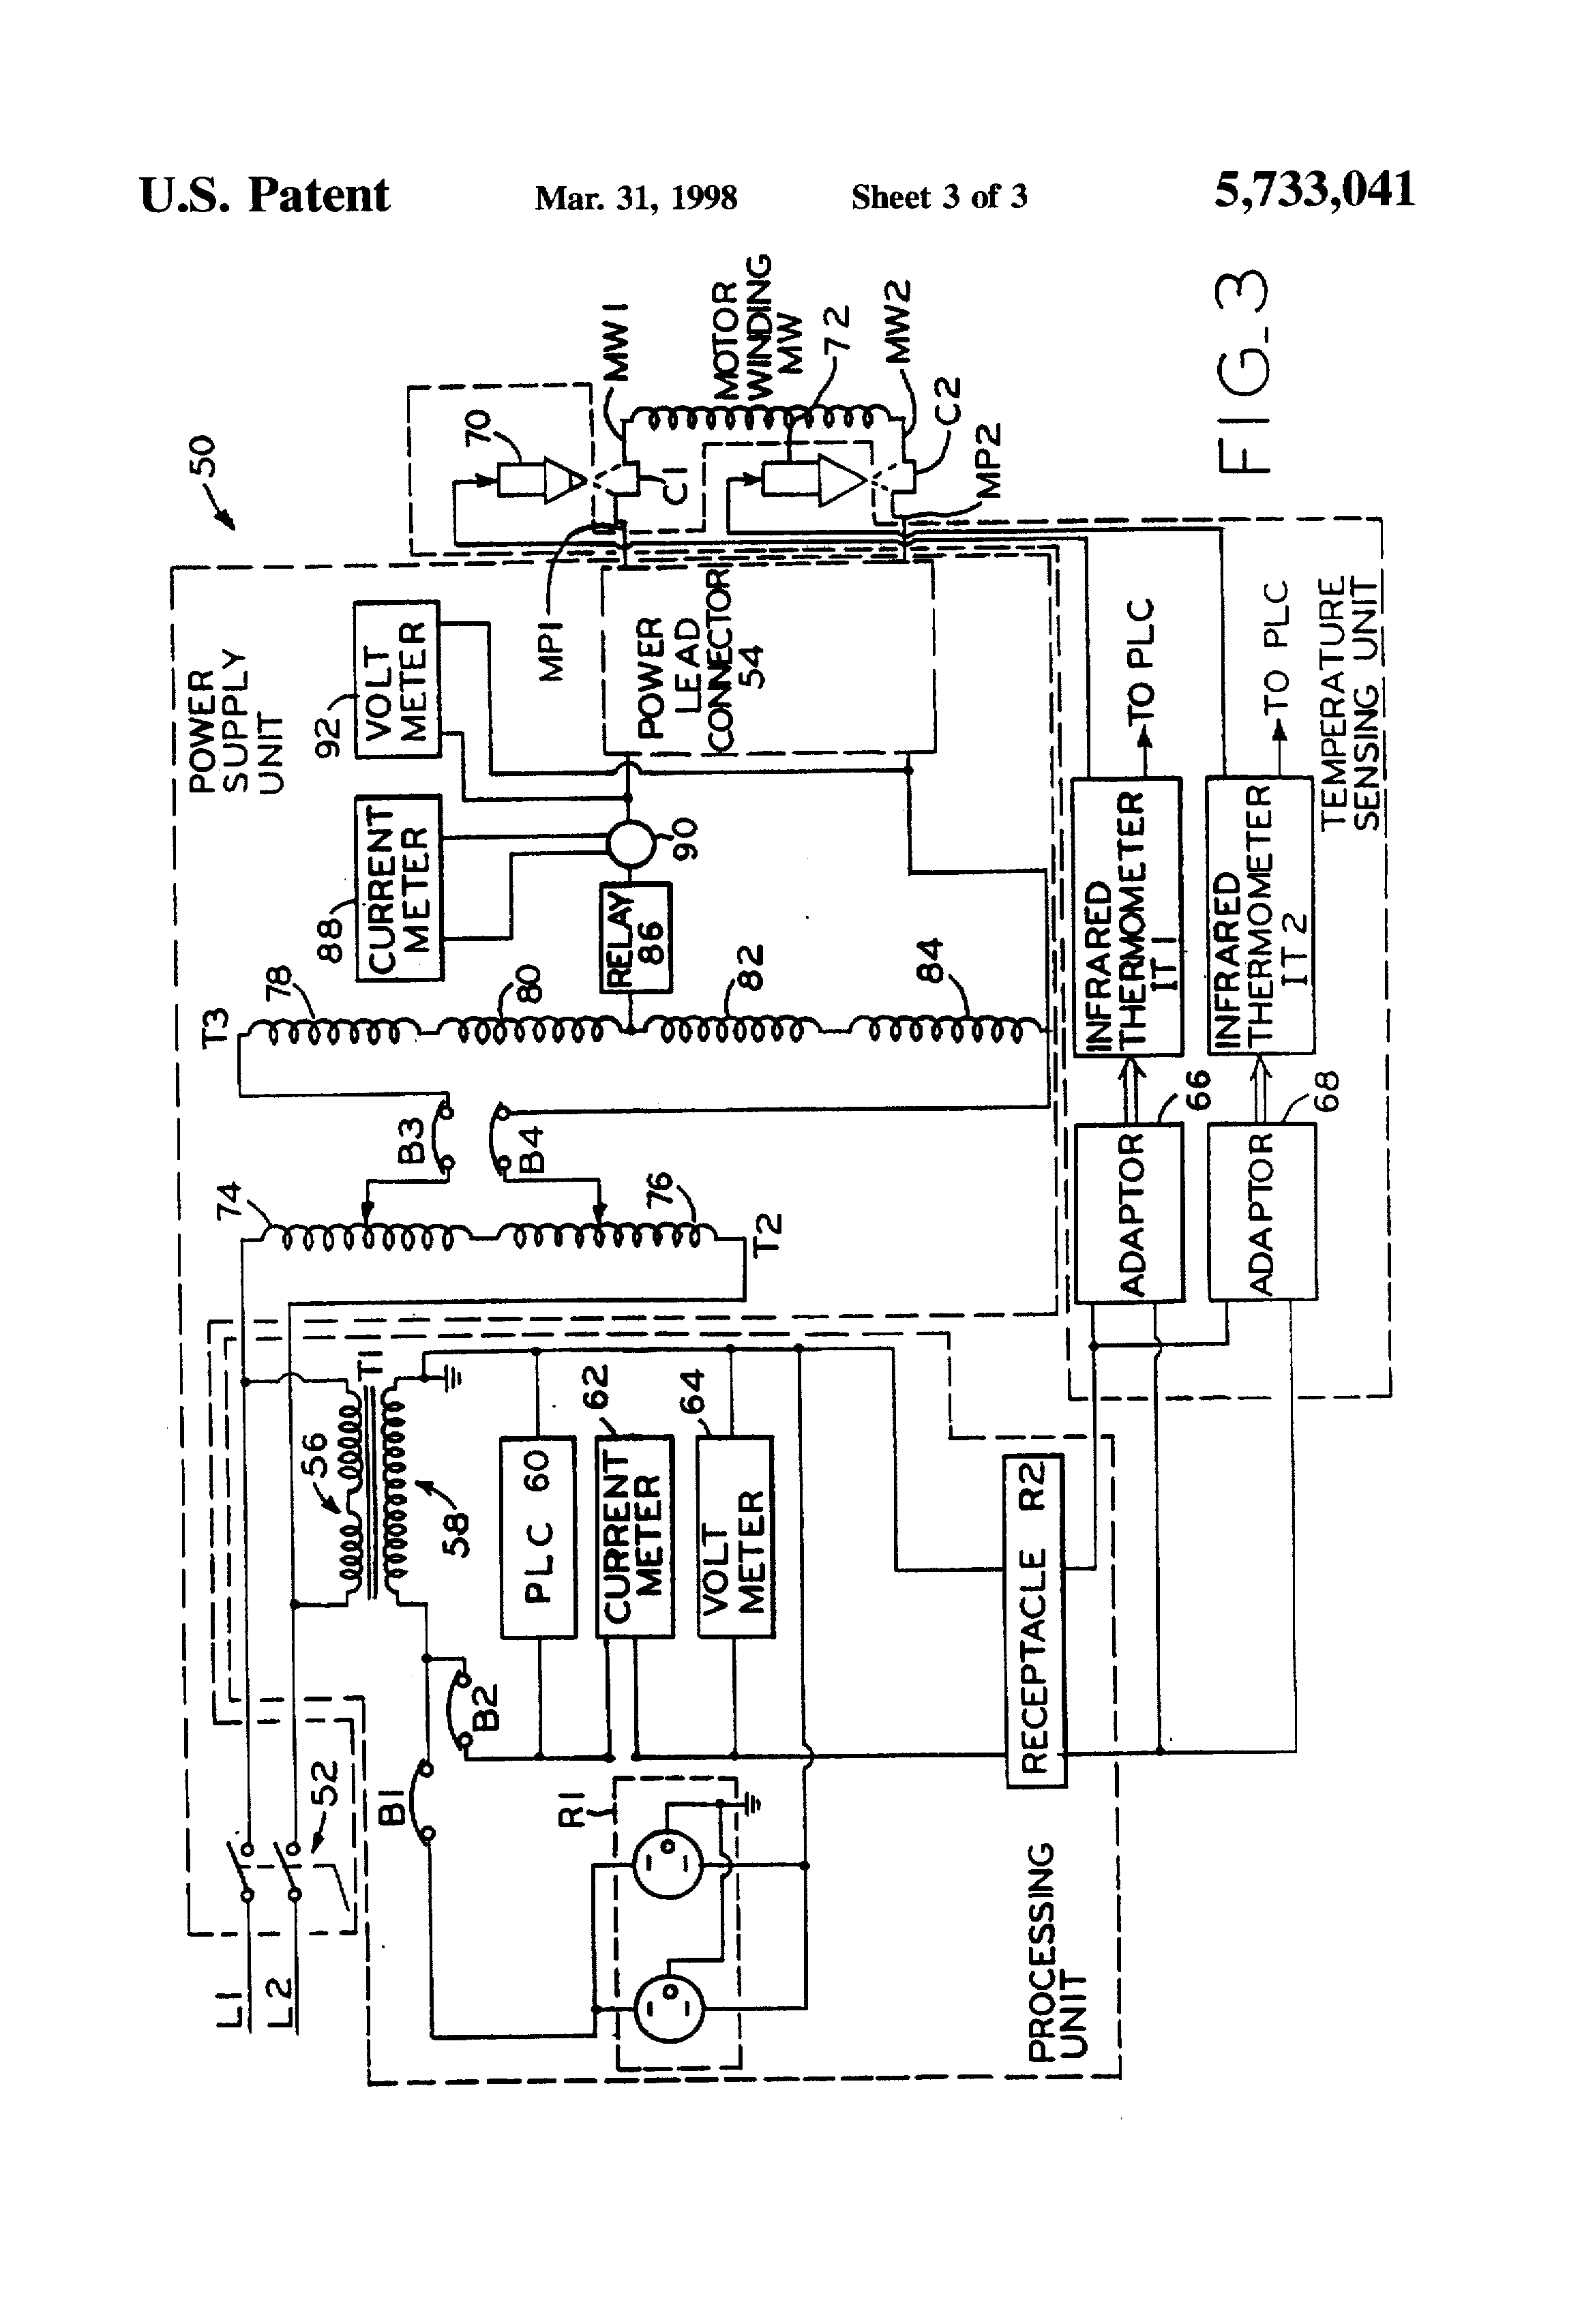 Mx321 Voltage Regulator Wiring Diagram